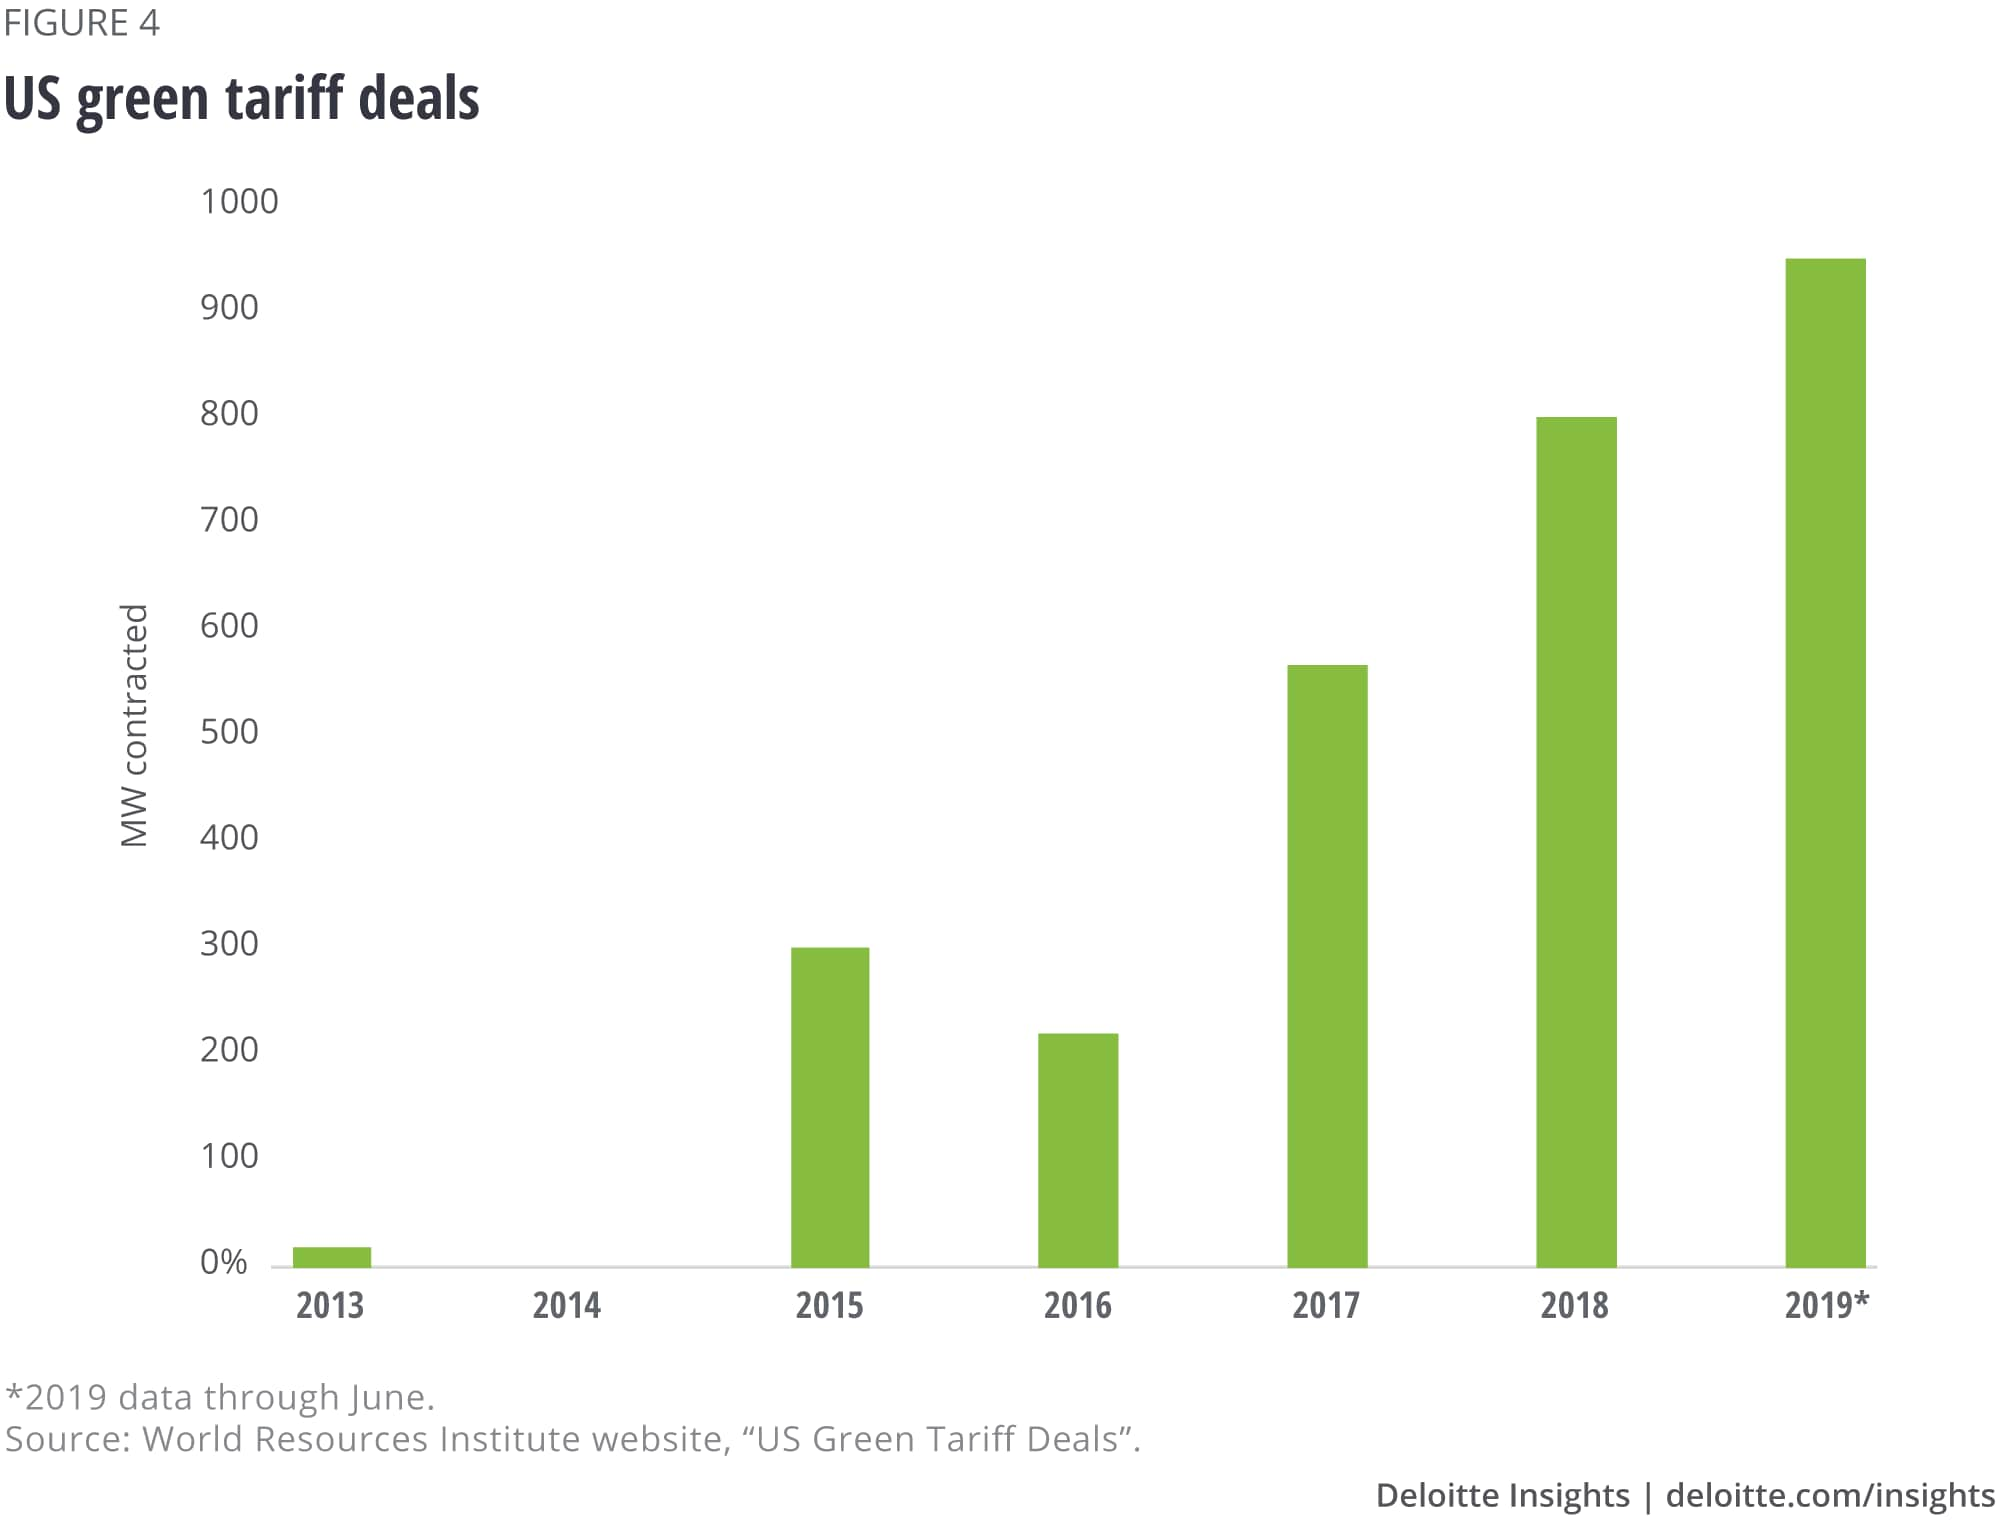 US green tariff deals